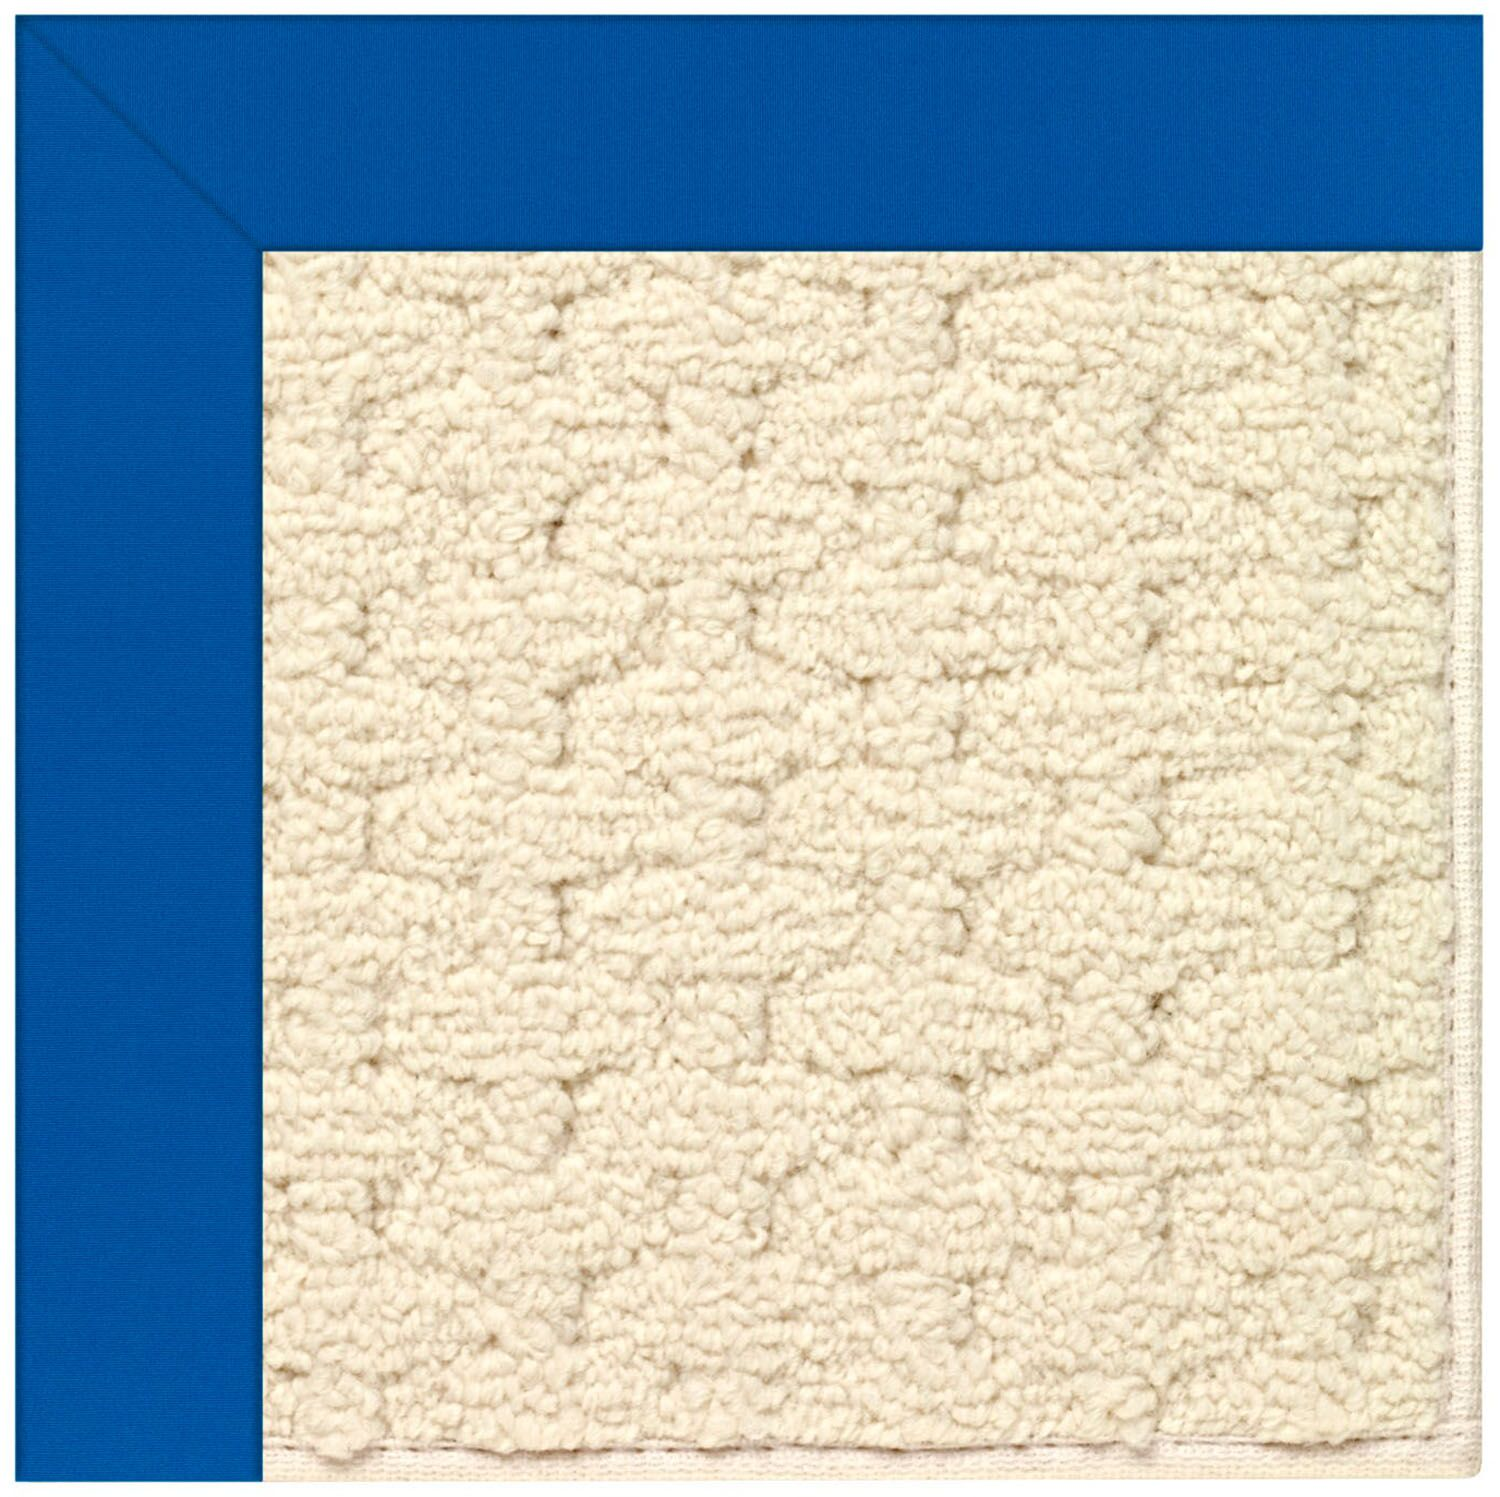 Lisle Off White Indoor/Outdoor Area Rug Rug Size: Rectangle 9' x 12'